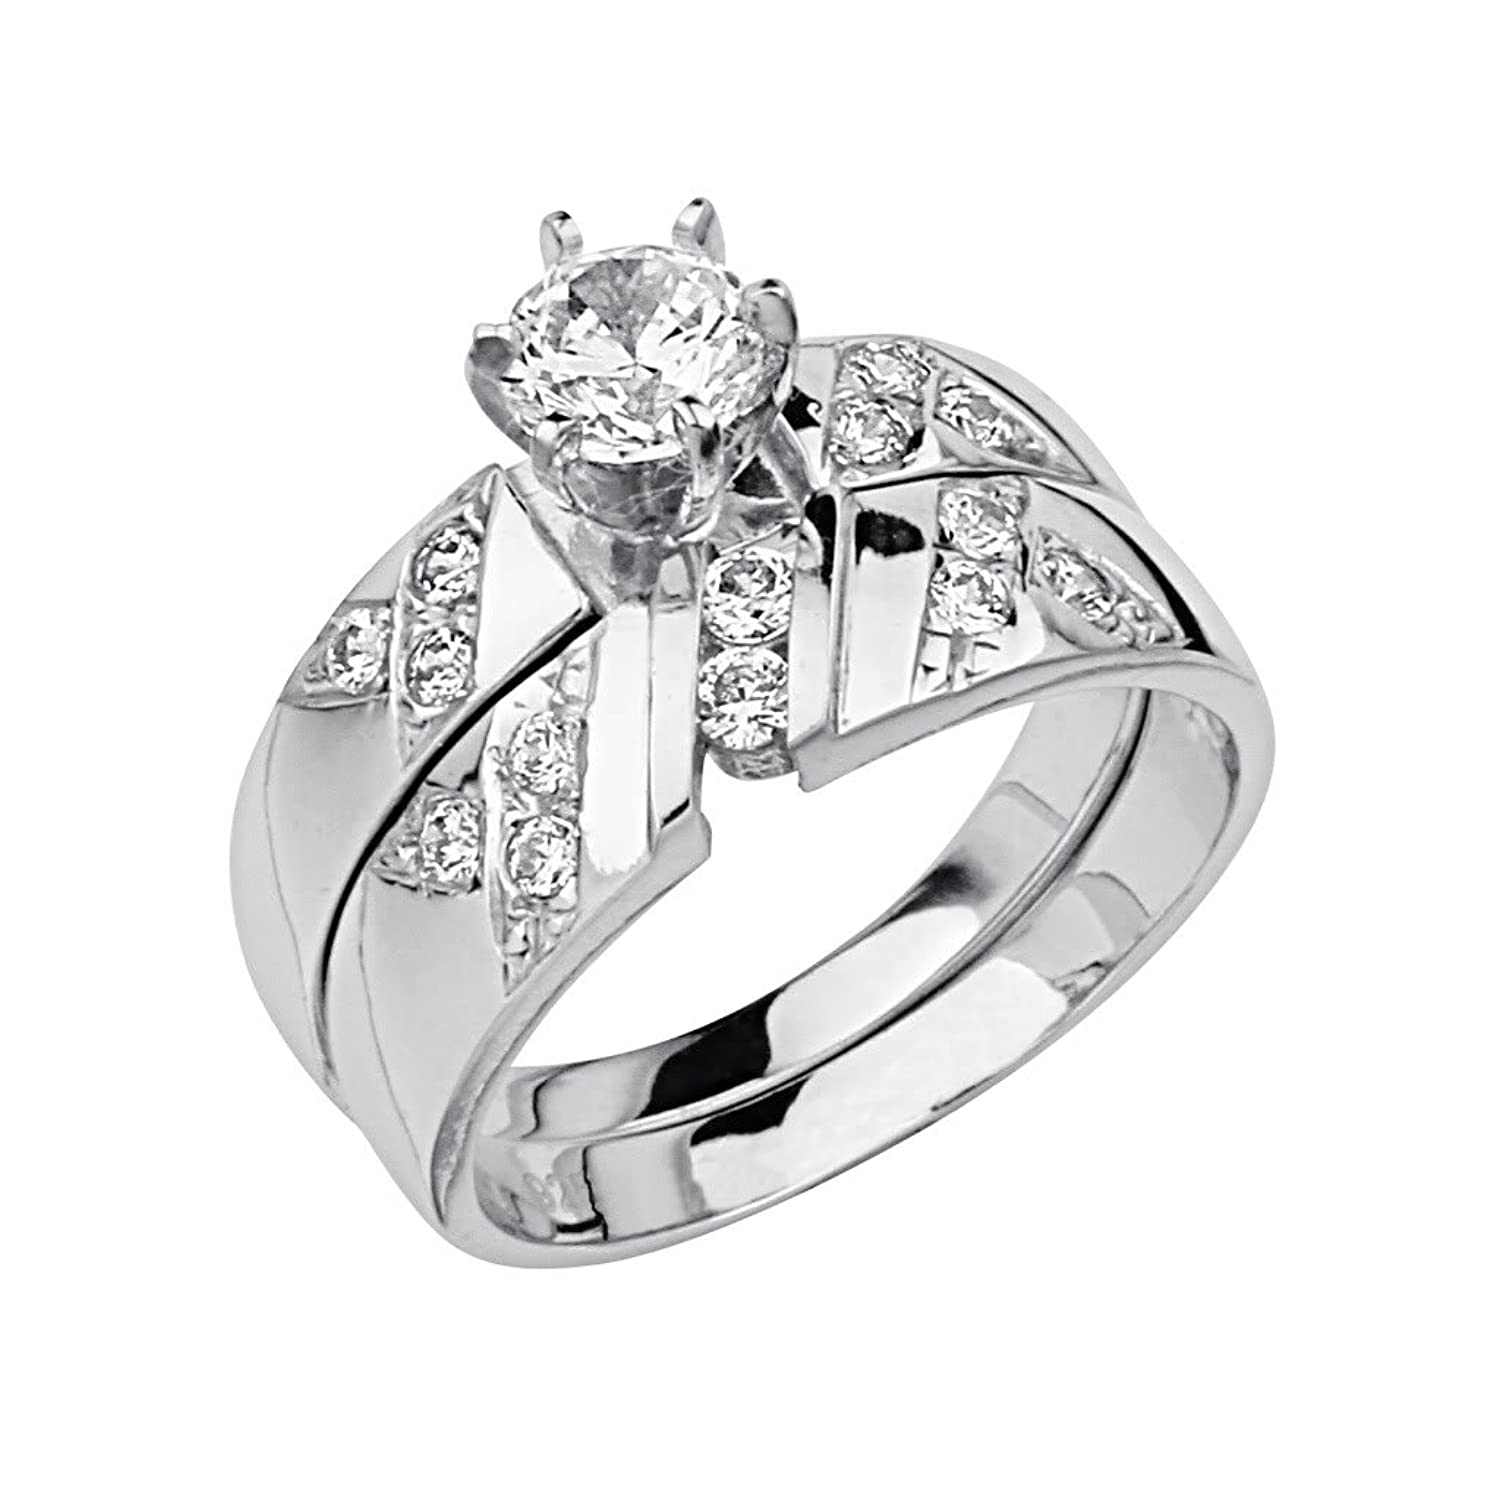 .925 Sterling Silver Rhodium Plated Wedding Engagement Ring and Wedding Band 2 Piece Set